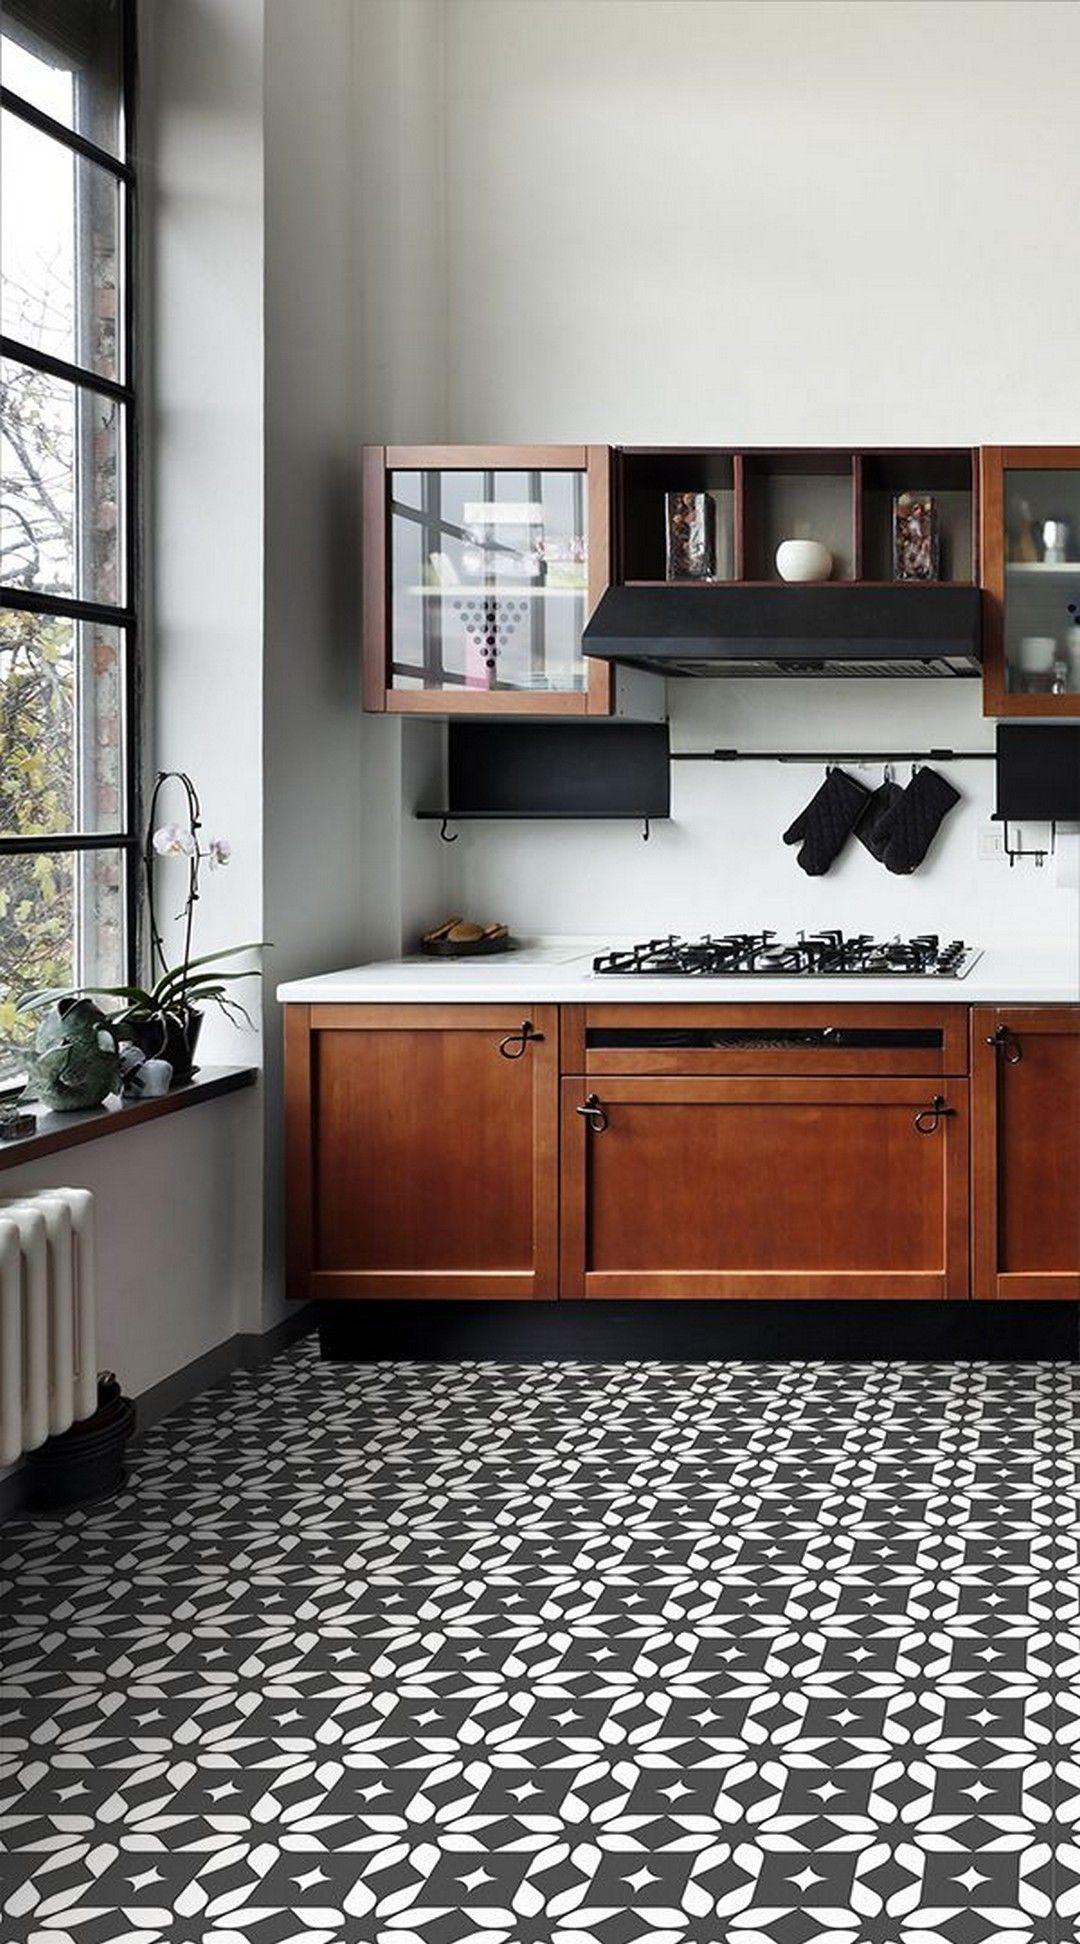 37 Modern Flooring Ideas To Give Your Kitchen A New Look Https Kitchendecorpad Com 2018 11 06 37 Modern Floor Design Modern Flooring Traditional Tile Design